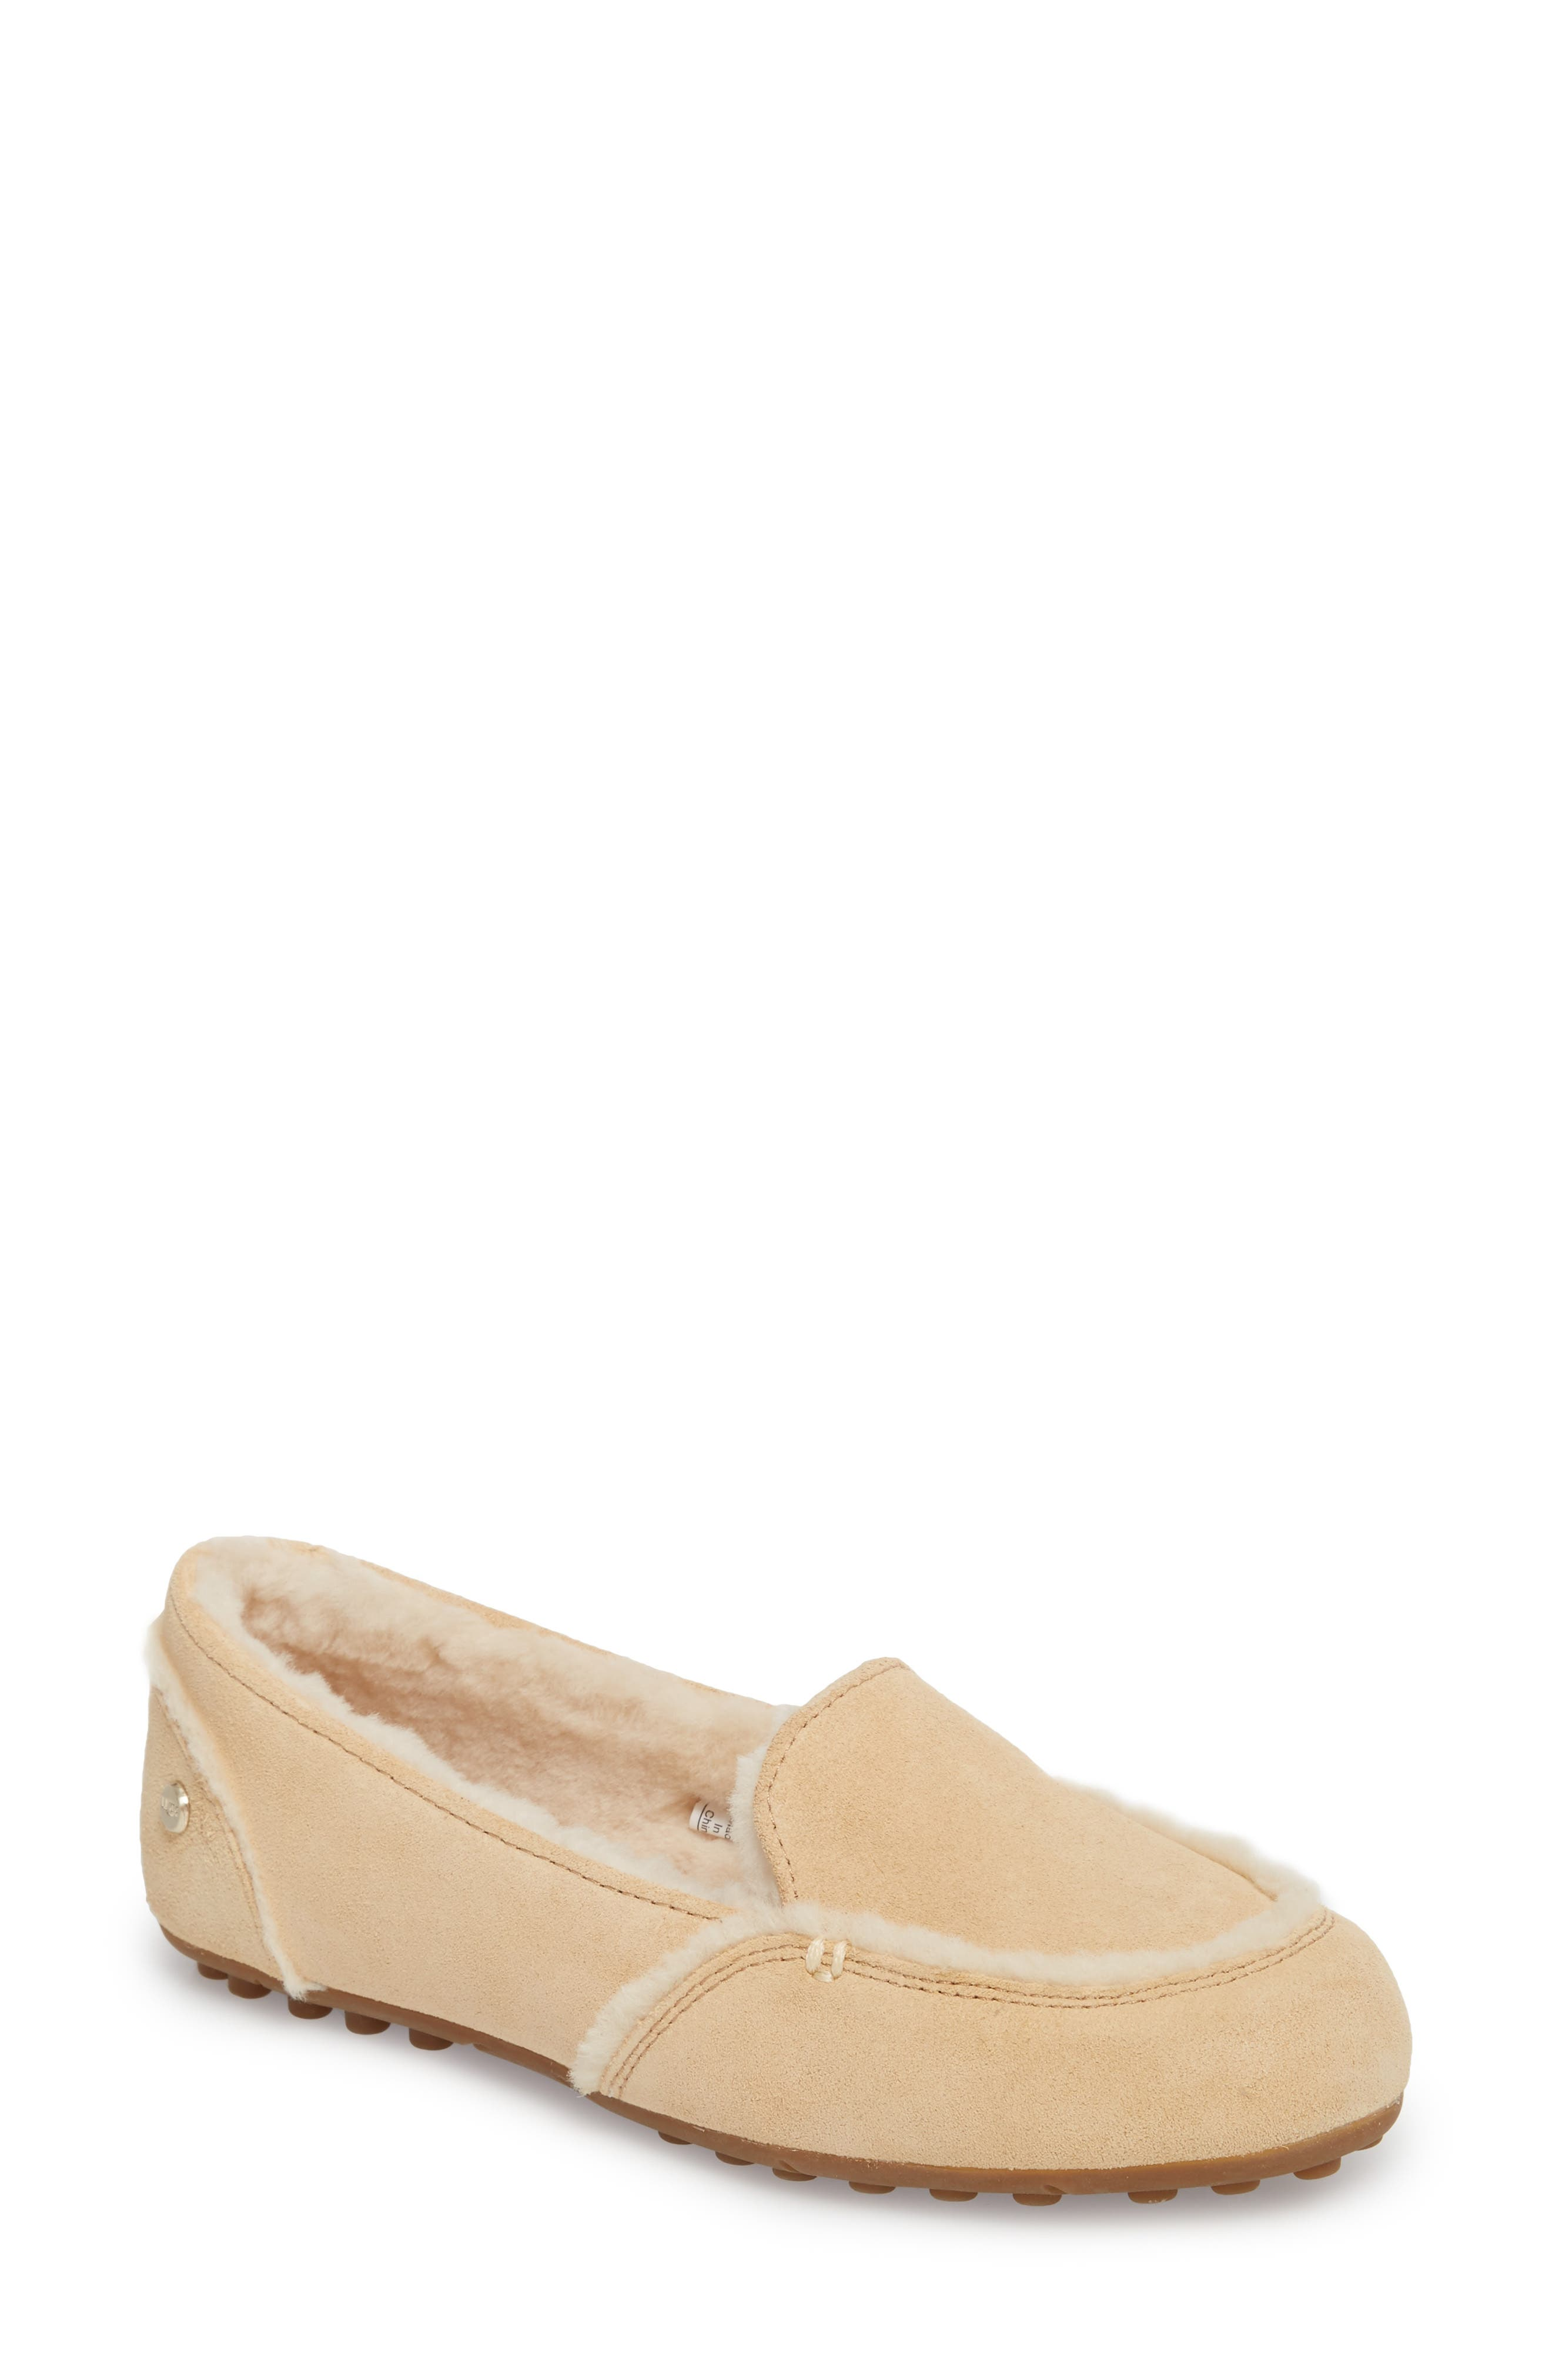 Hailey Slipper,                         Main,                         color, Beige Suede